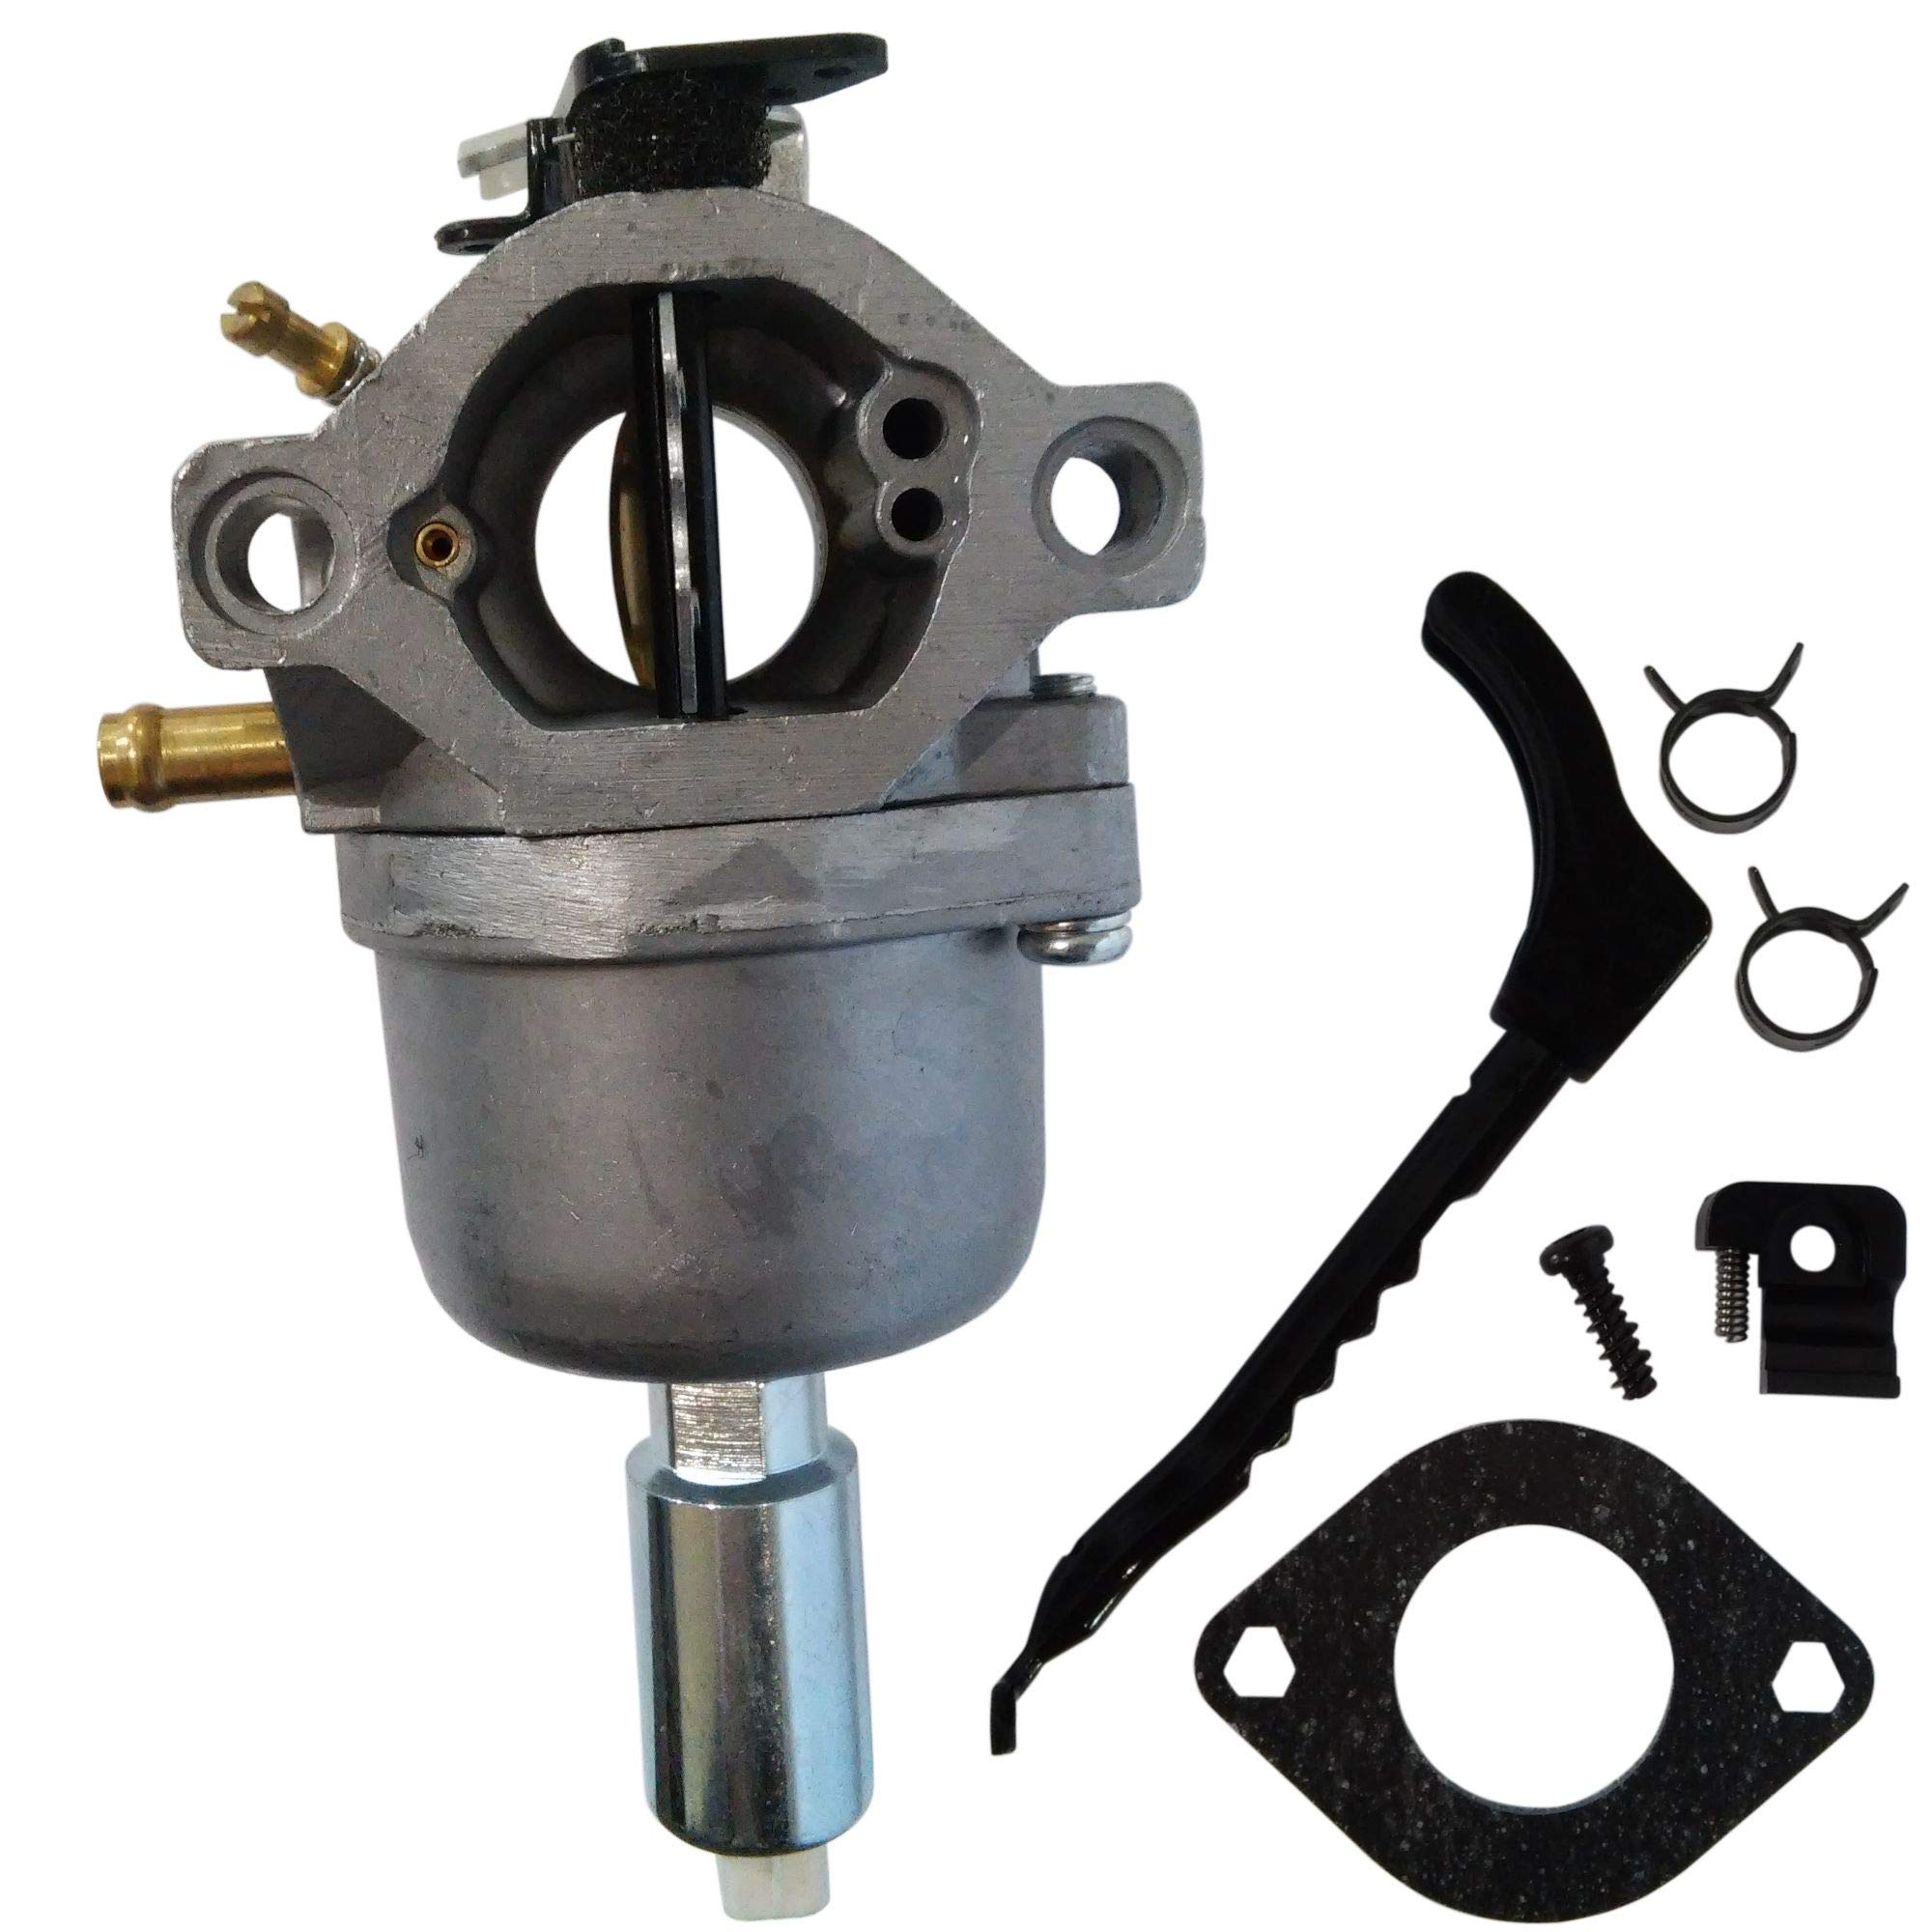 Auto Express Fits Briggs & Stratton 17.5 14 hp 18hp intek Carburetor 794572-793224 Assembly by Auto Express